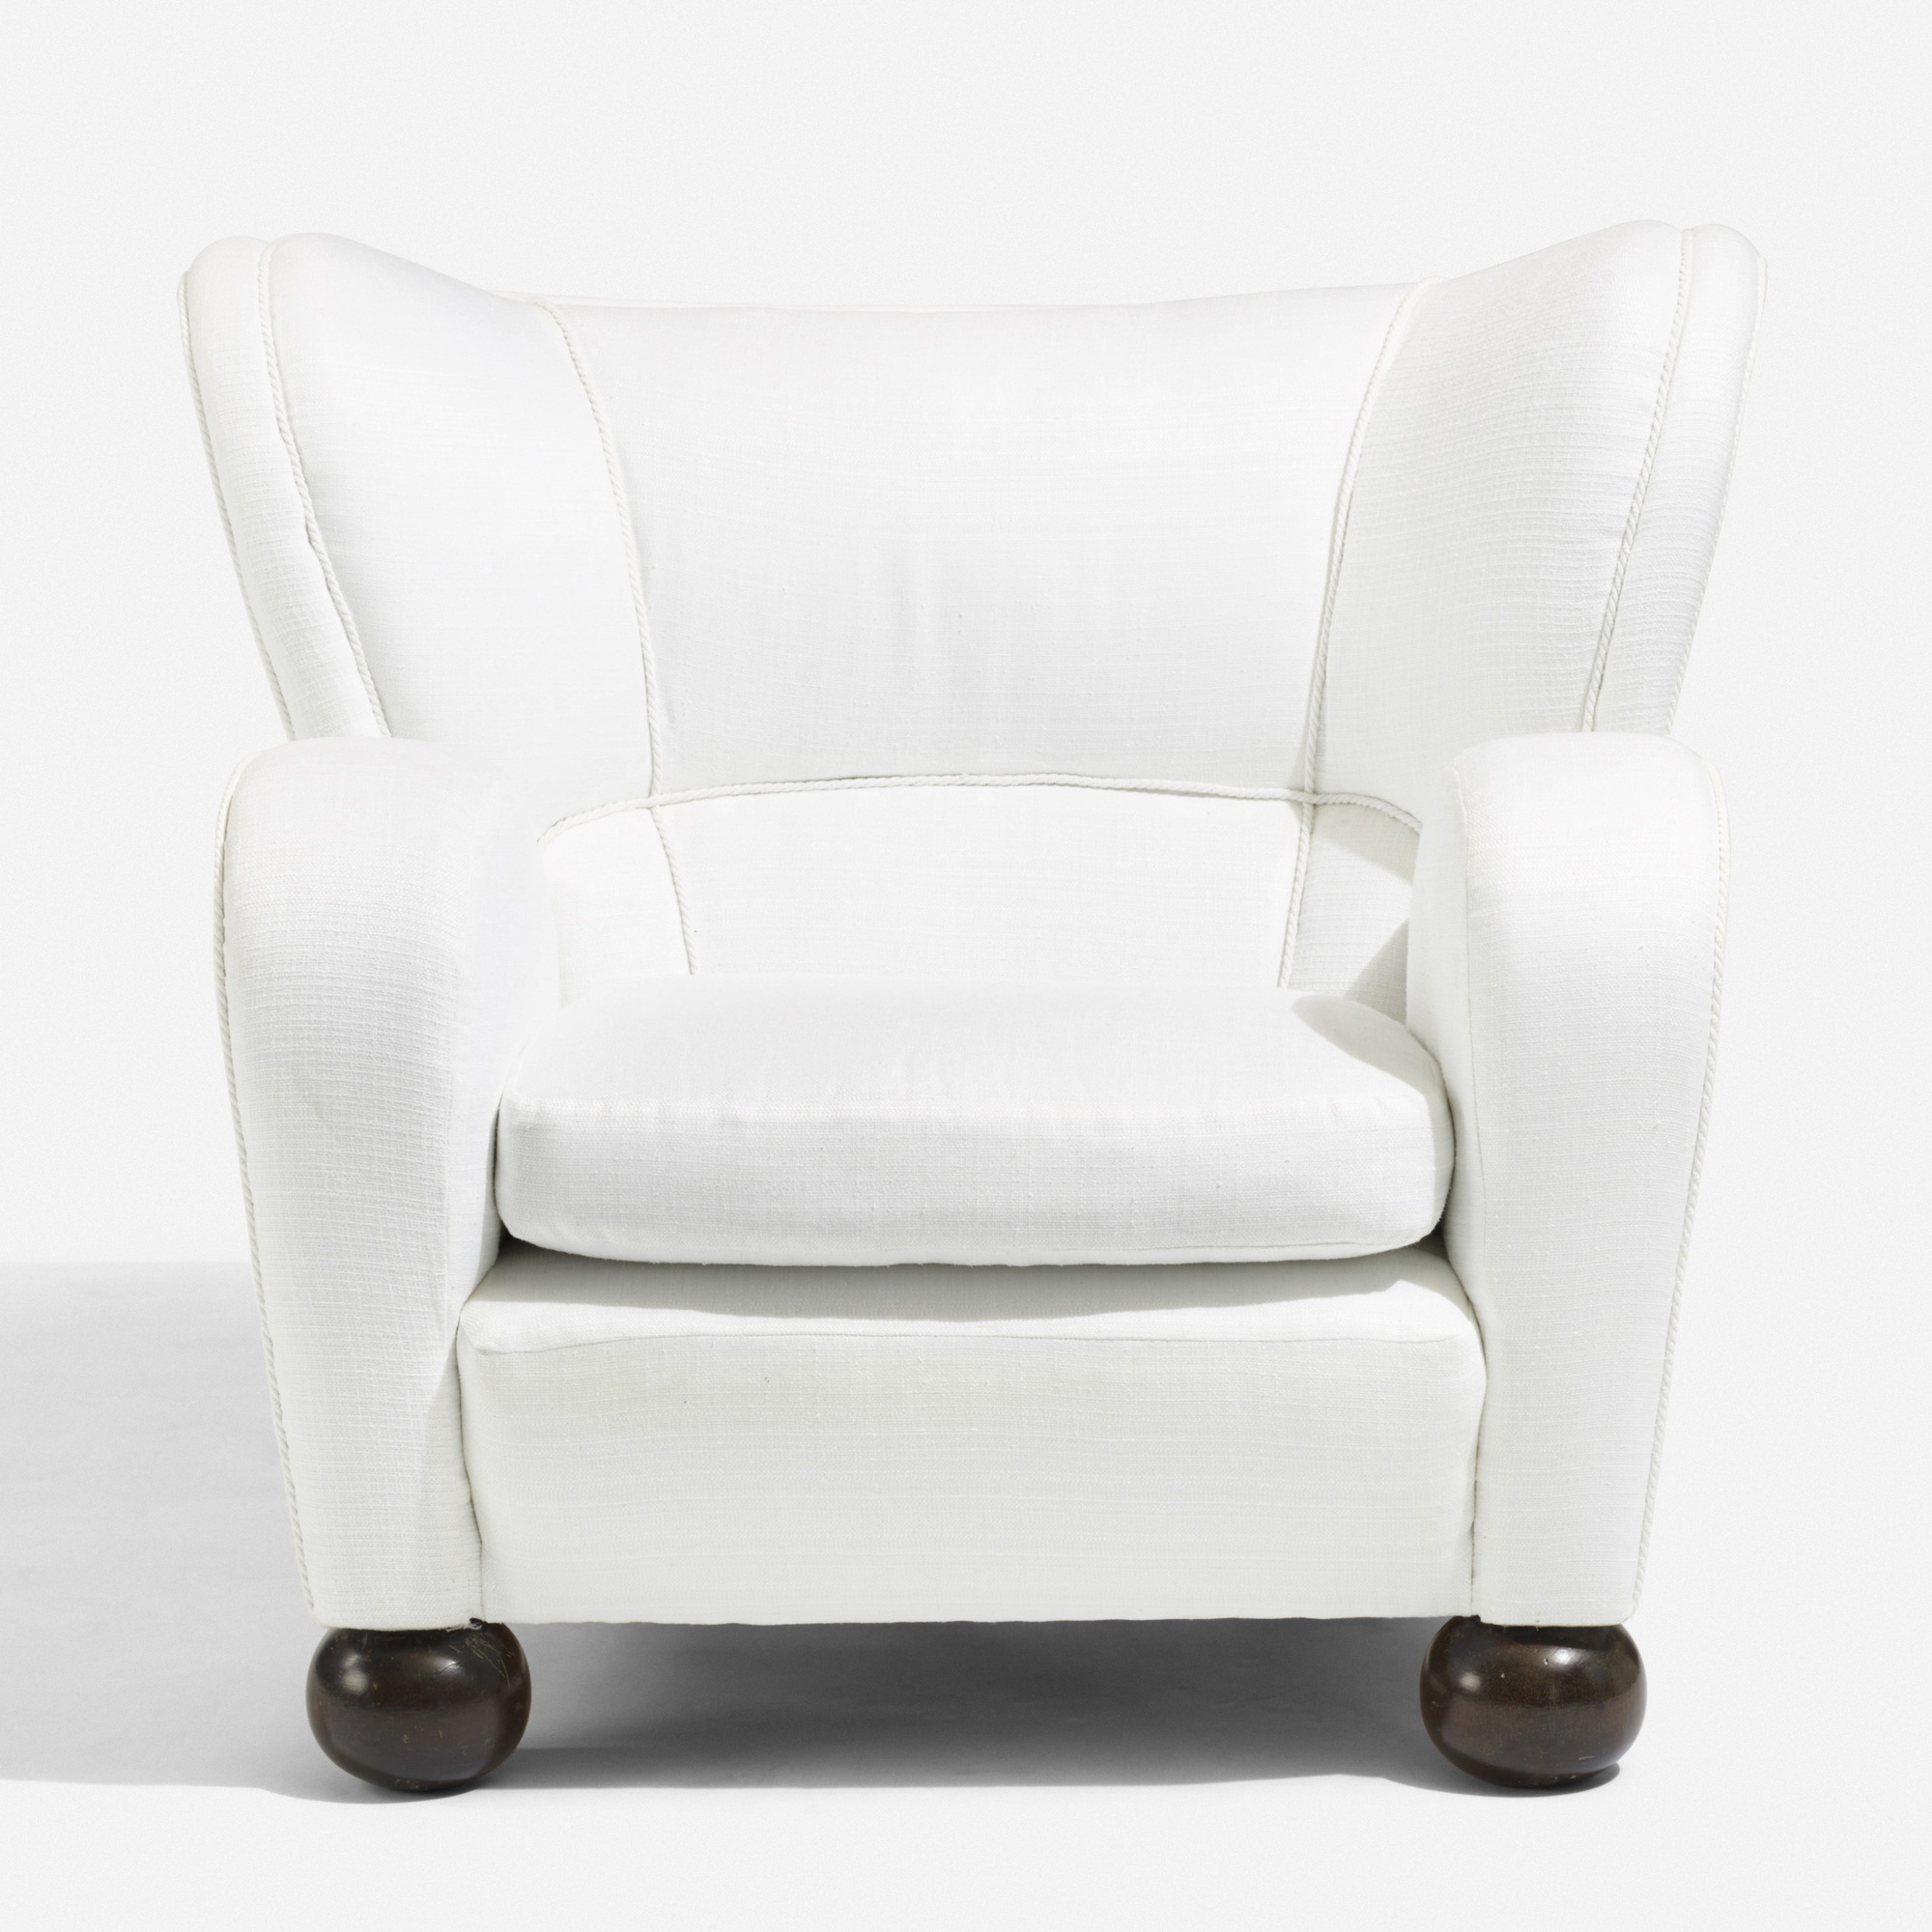 Stupendous 153 Marta Blomstedt Lounge Chair From Hotel Aulanko Theyellowbook Wood Chair Design Ideas Theyellowbookinfo